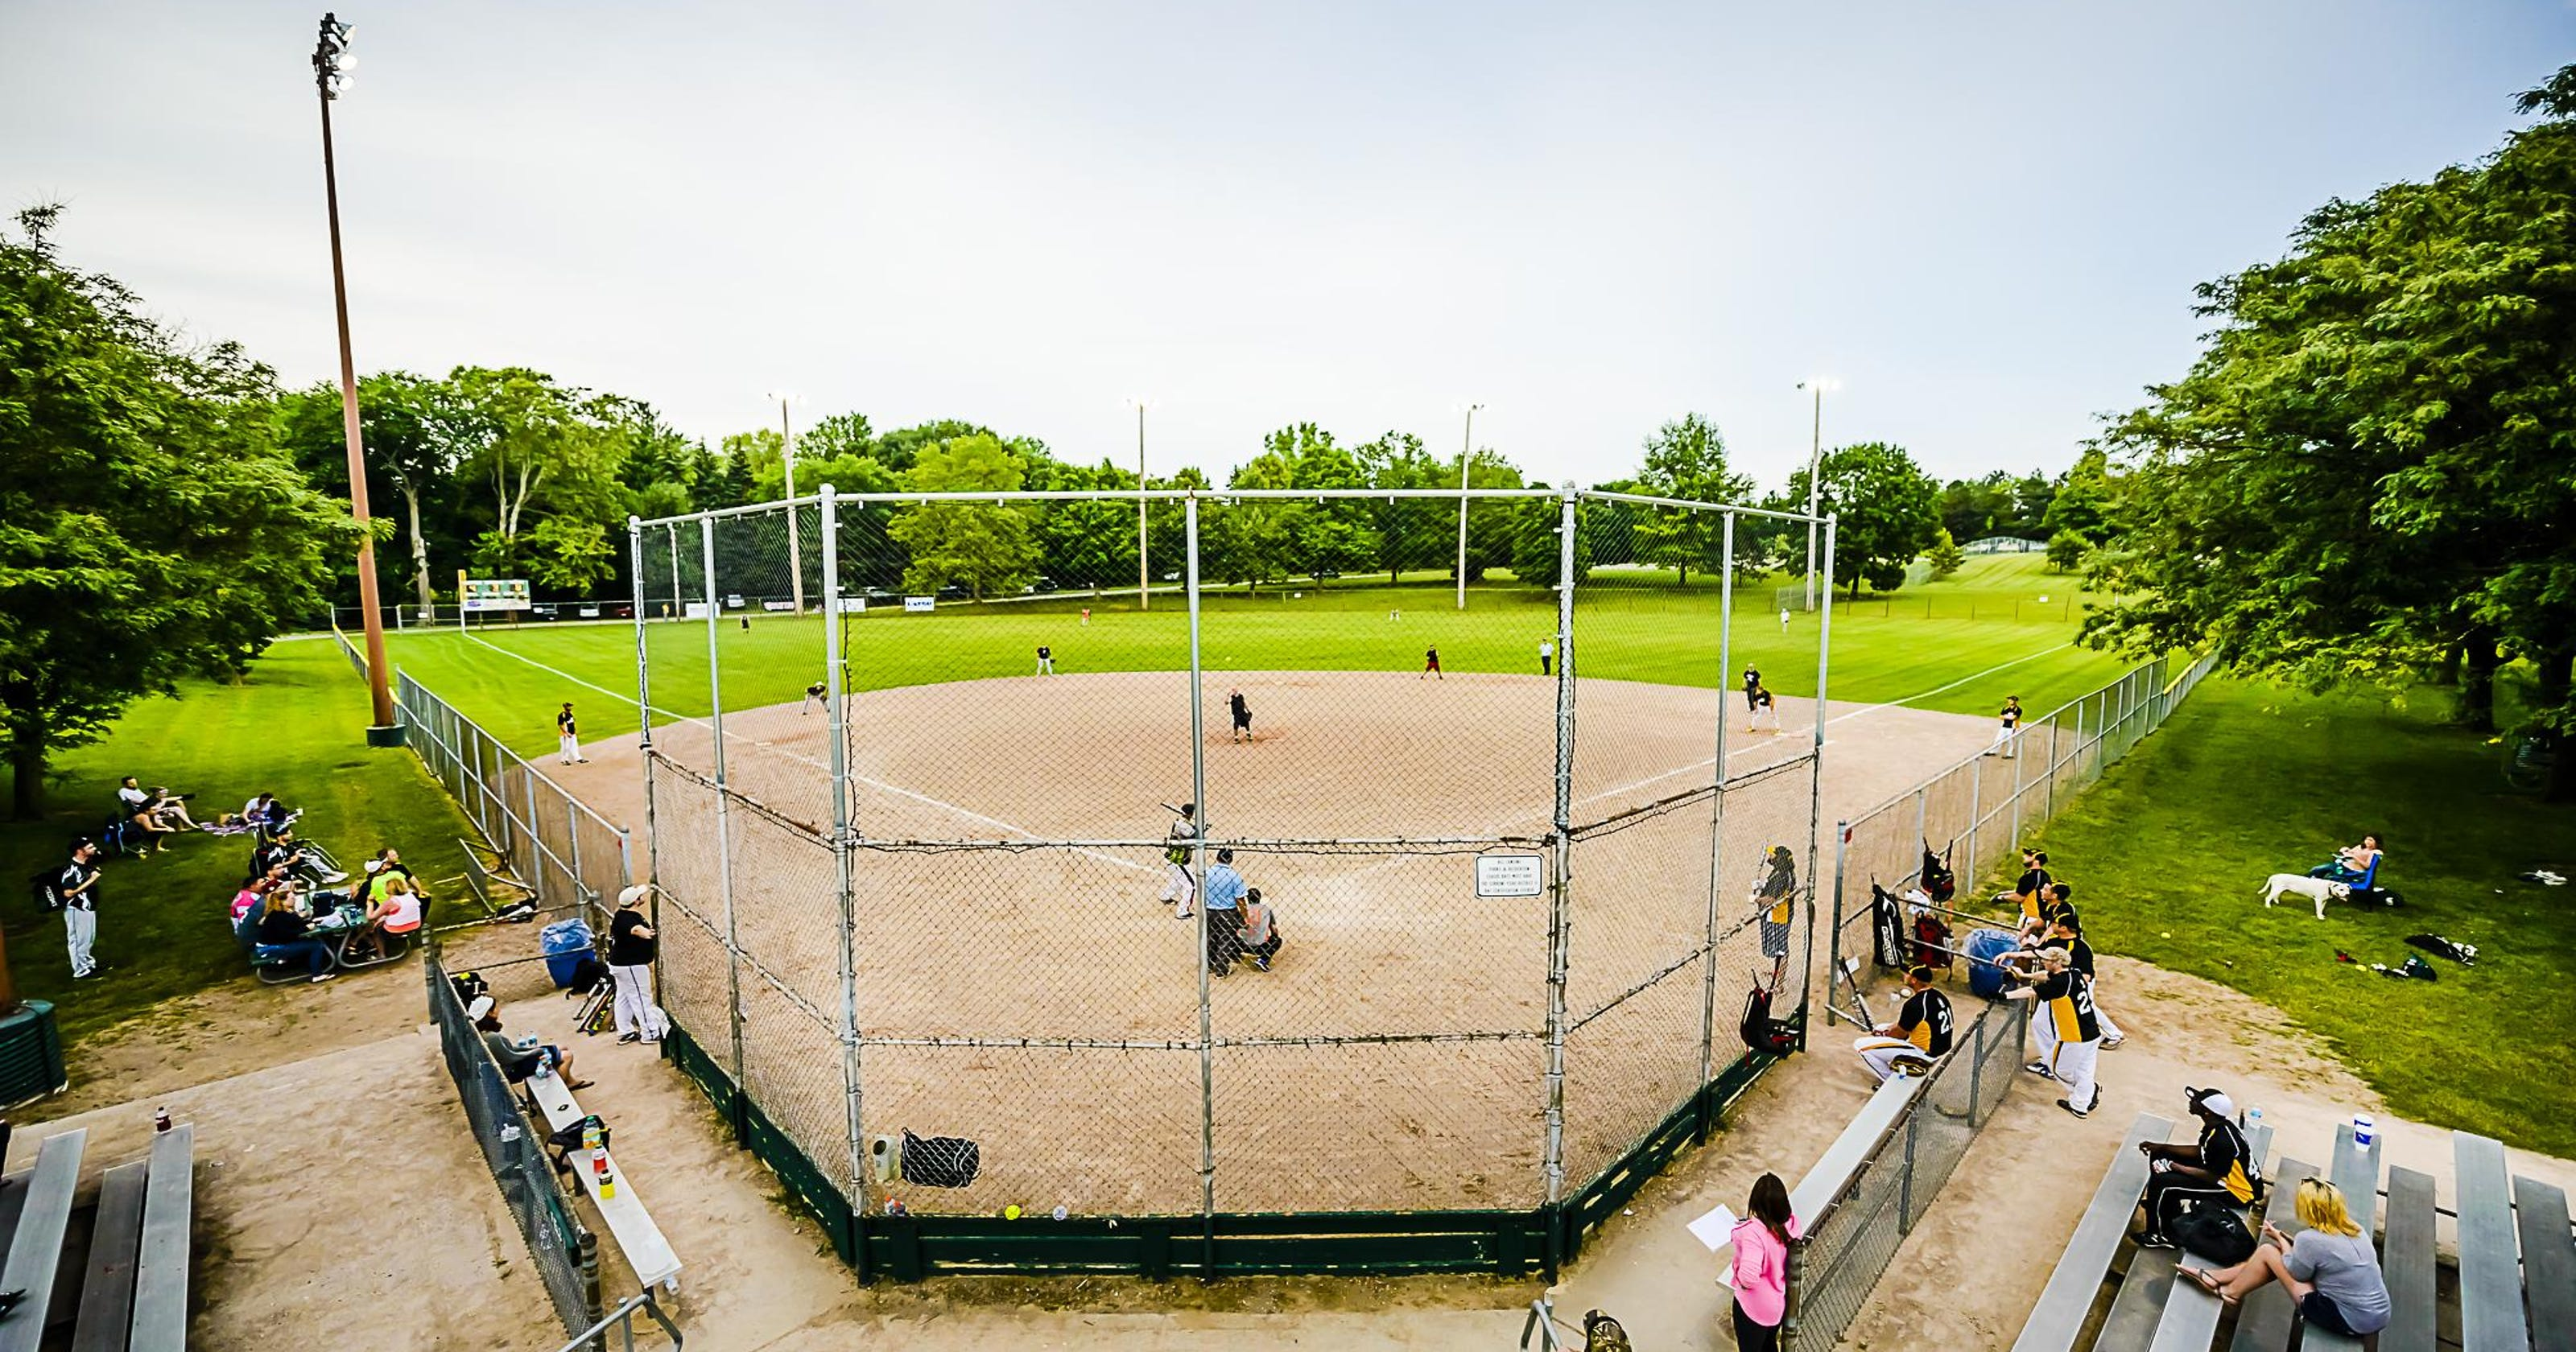 Couch: Slow-pitch softball no match for modern parents